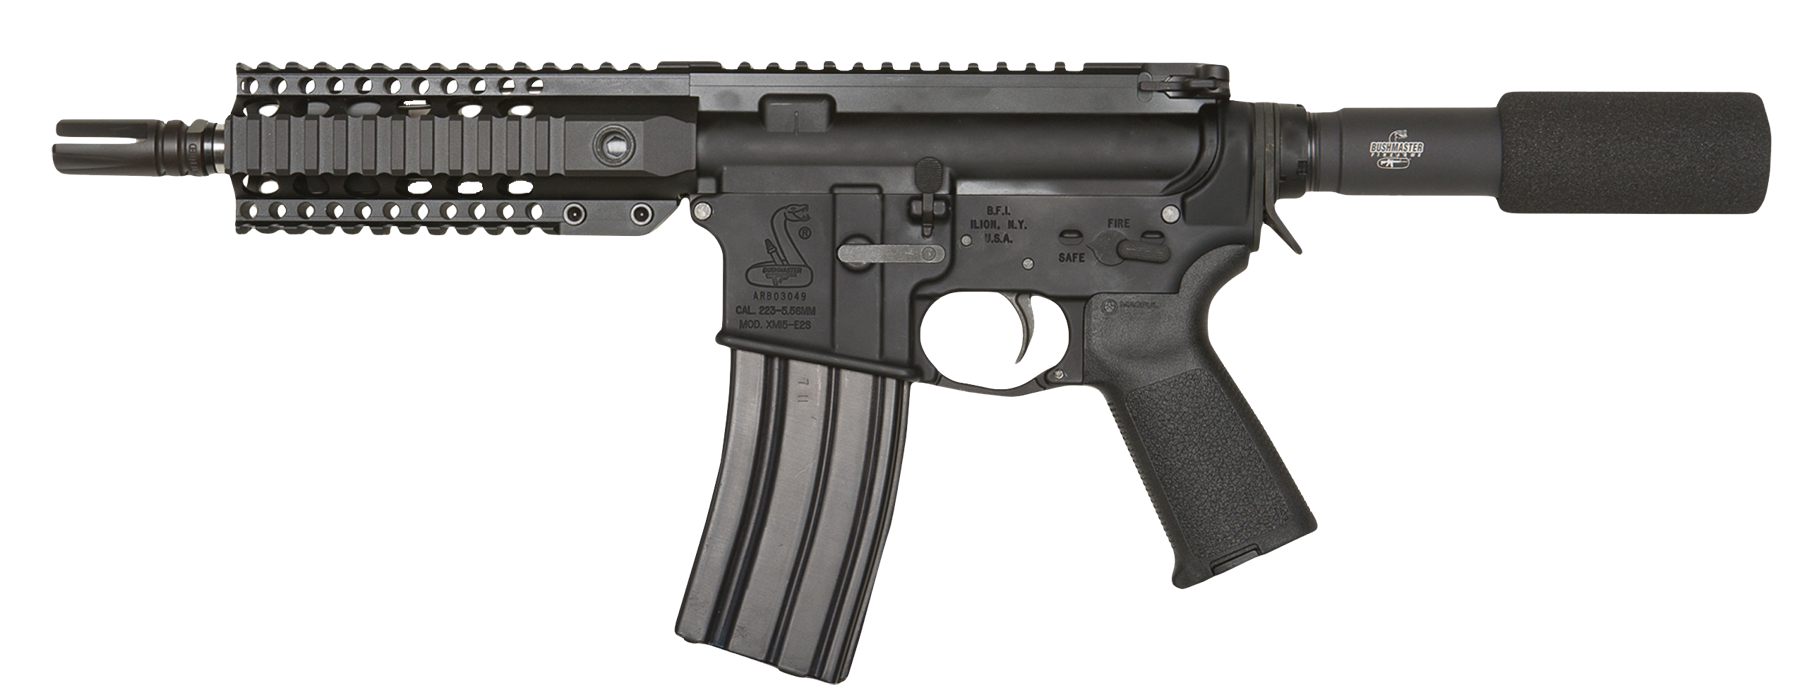 Bushmaster 91020 XM15 Enhanced Patrolmans AR Pstl SA 223Rem/5.56NATO 7